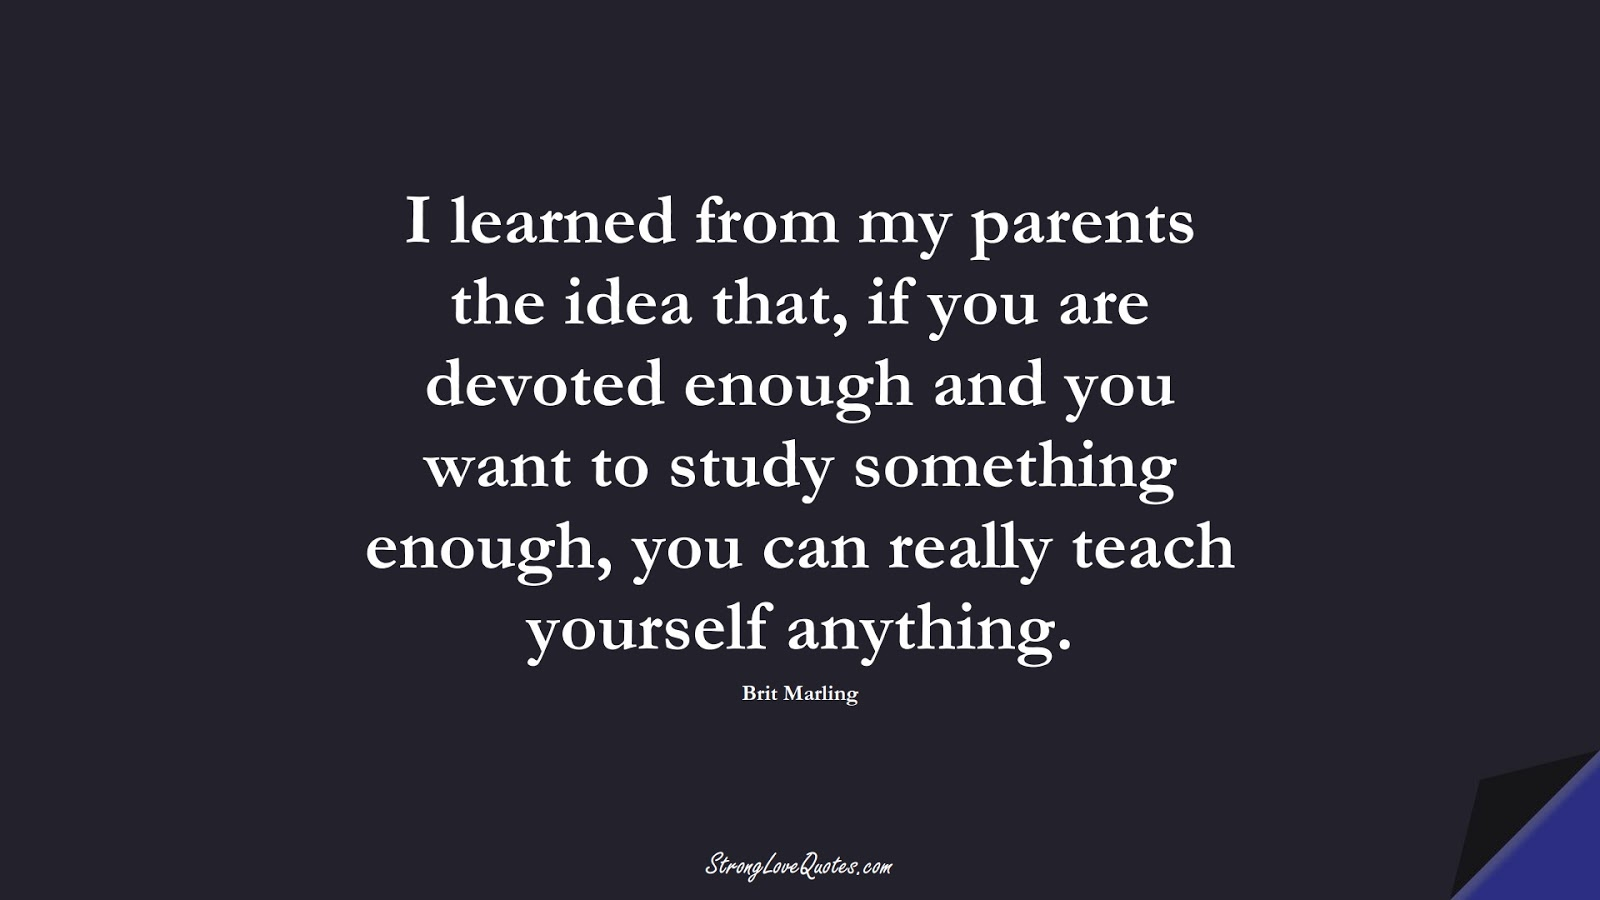 I learned from my parents the idea that, if you are devoted enough and you want to study something enough, you can really teach yourself anything. (Brit Marling);  #EducationQuotes